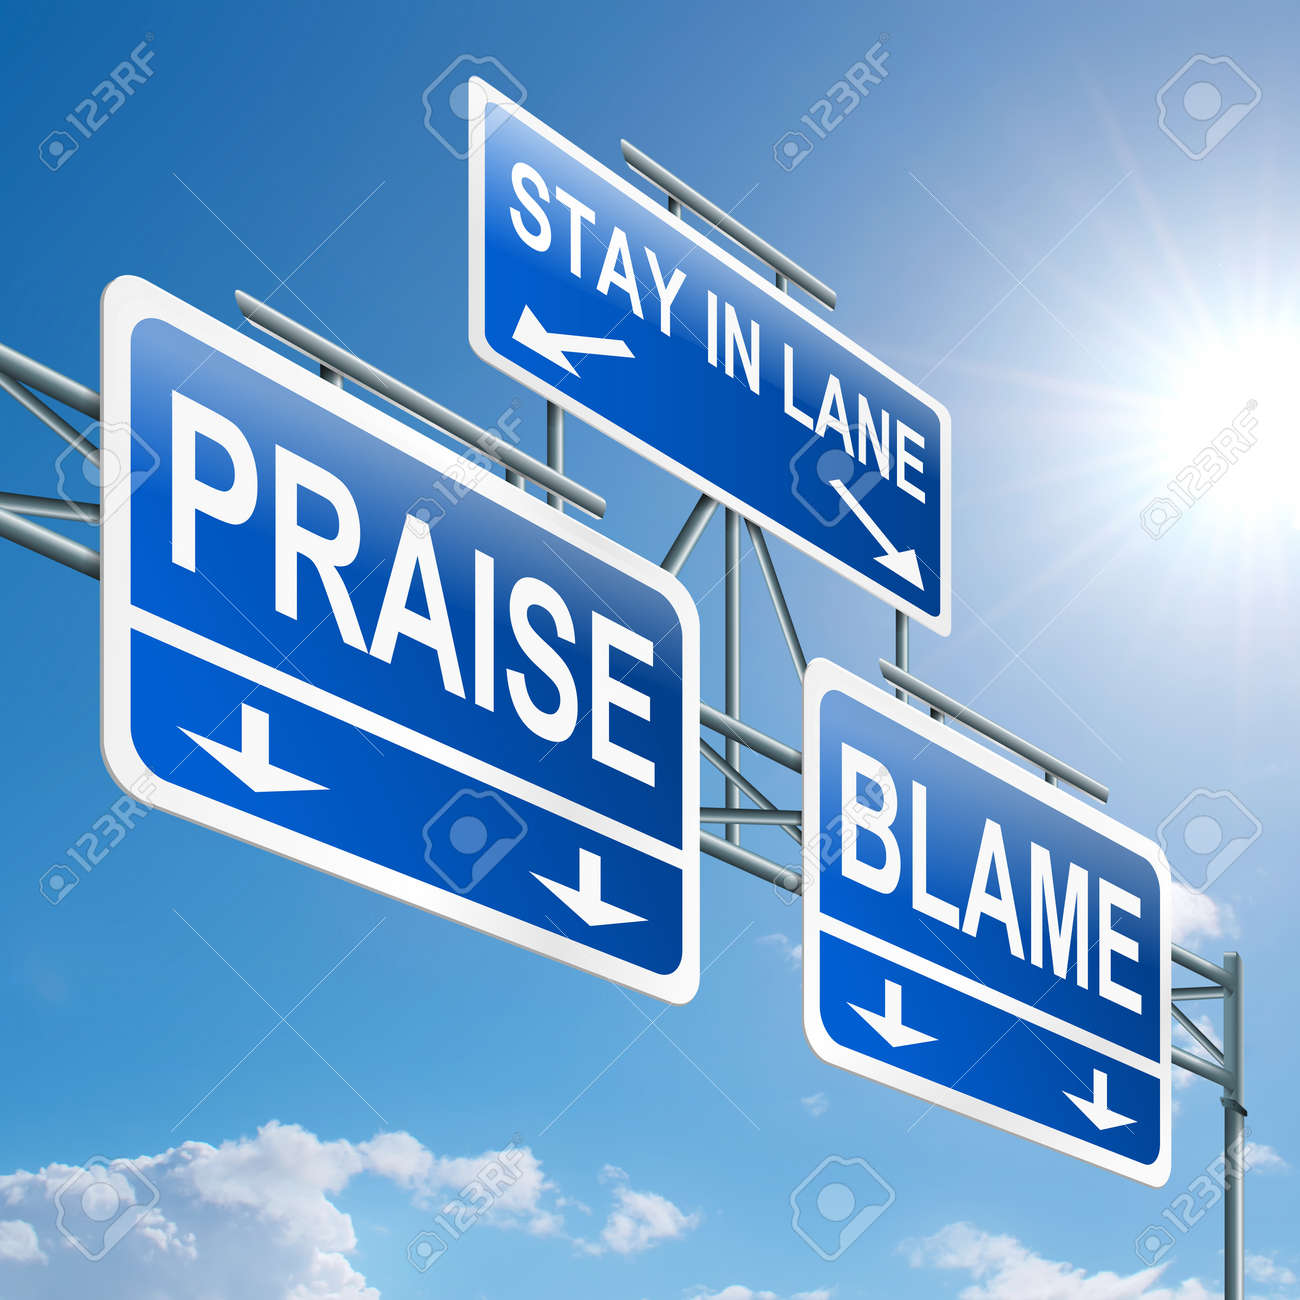 Illustration depicting a highway gantry sign with a praise or blame concept  Blue sky background Stock Illustration - 14368861